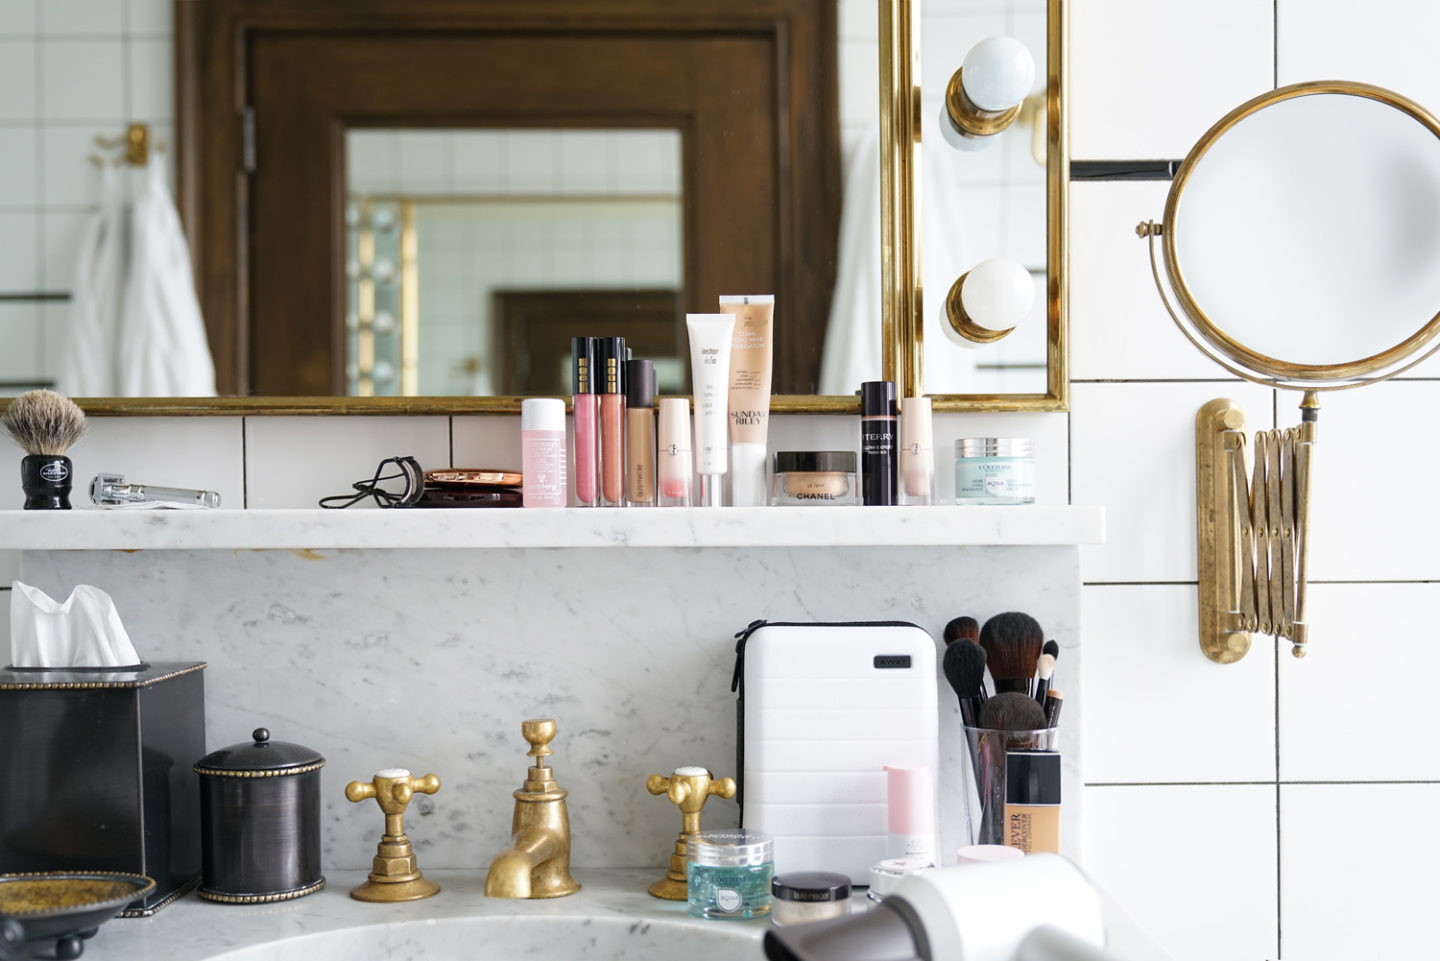 Travel Beauty NYC | The Ludlow Hotel